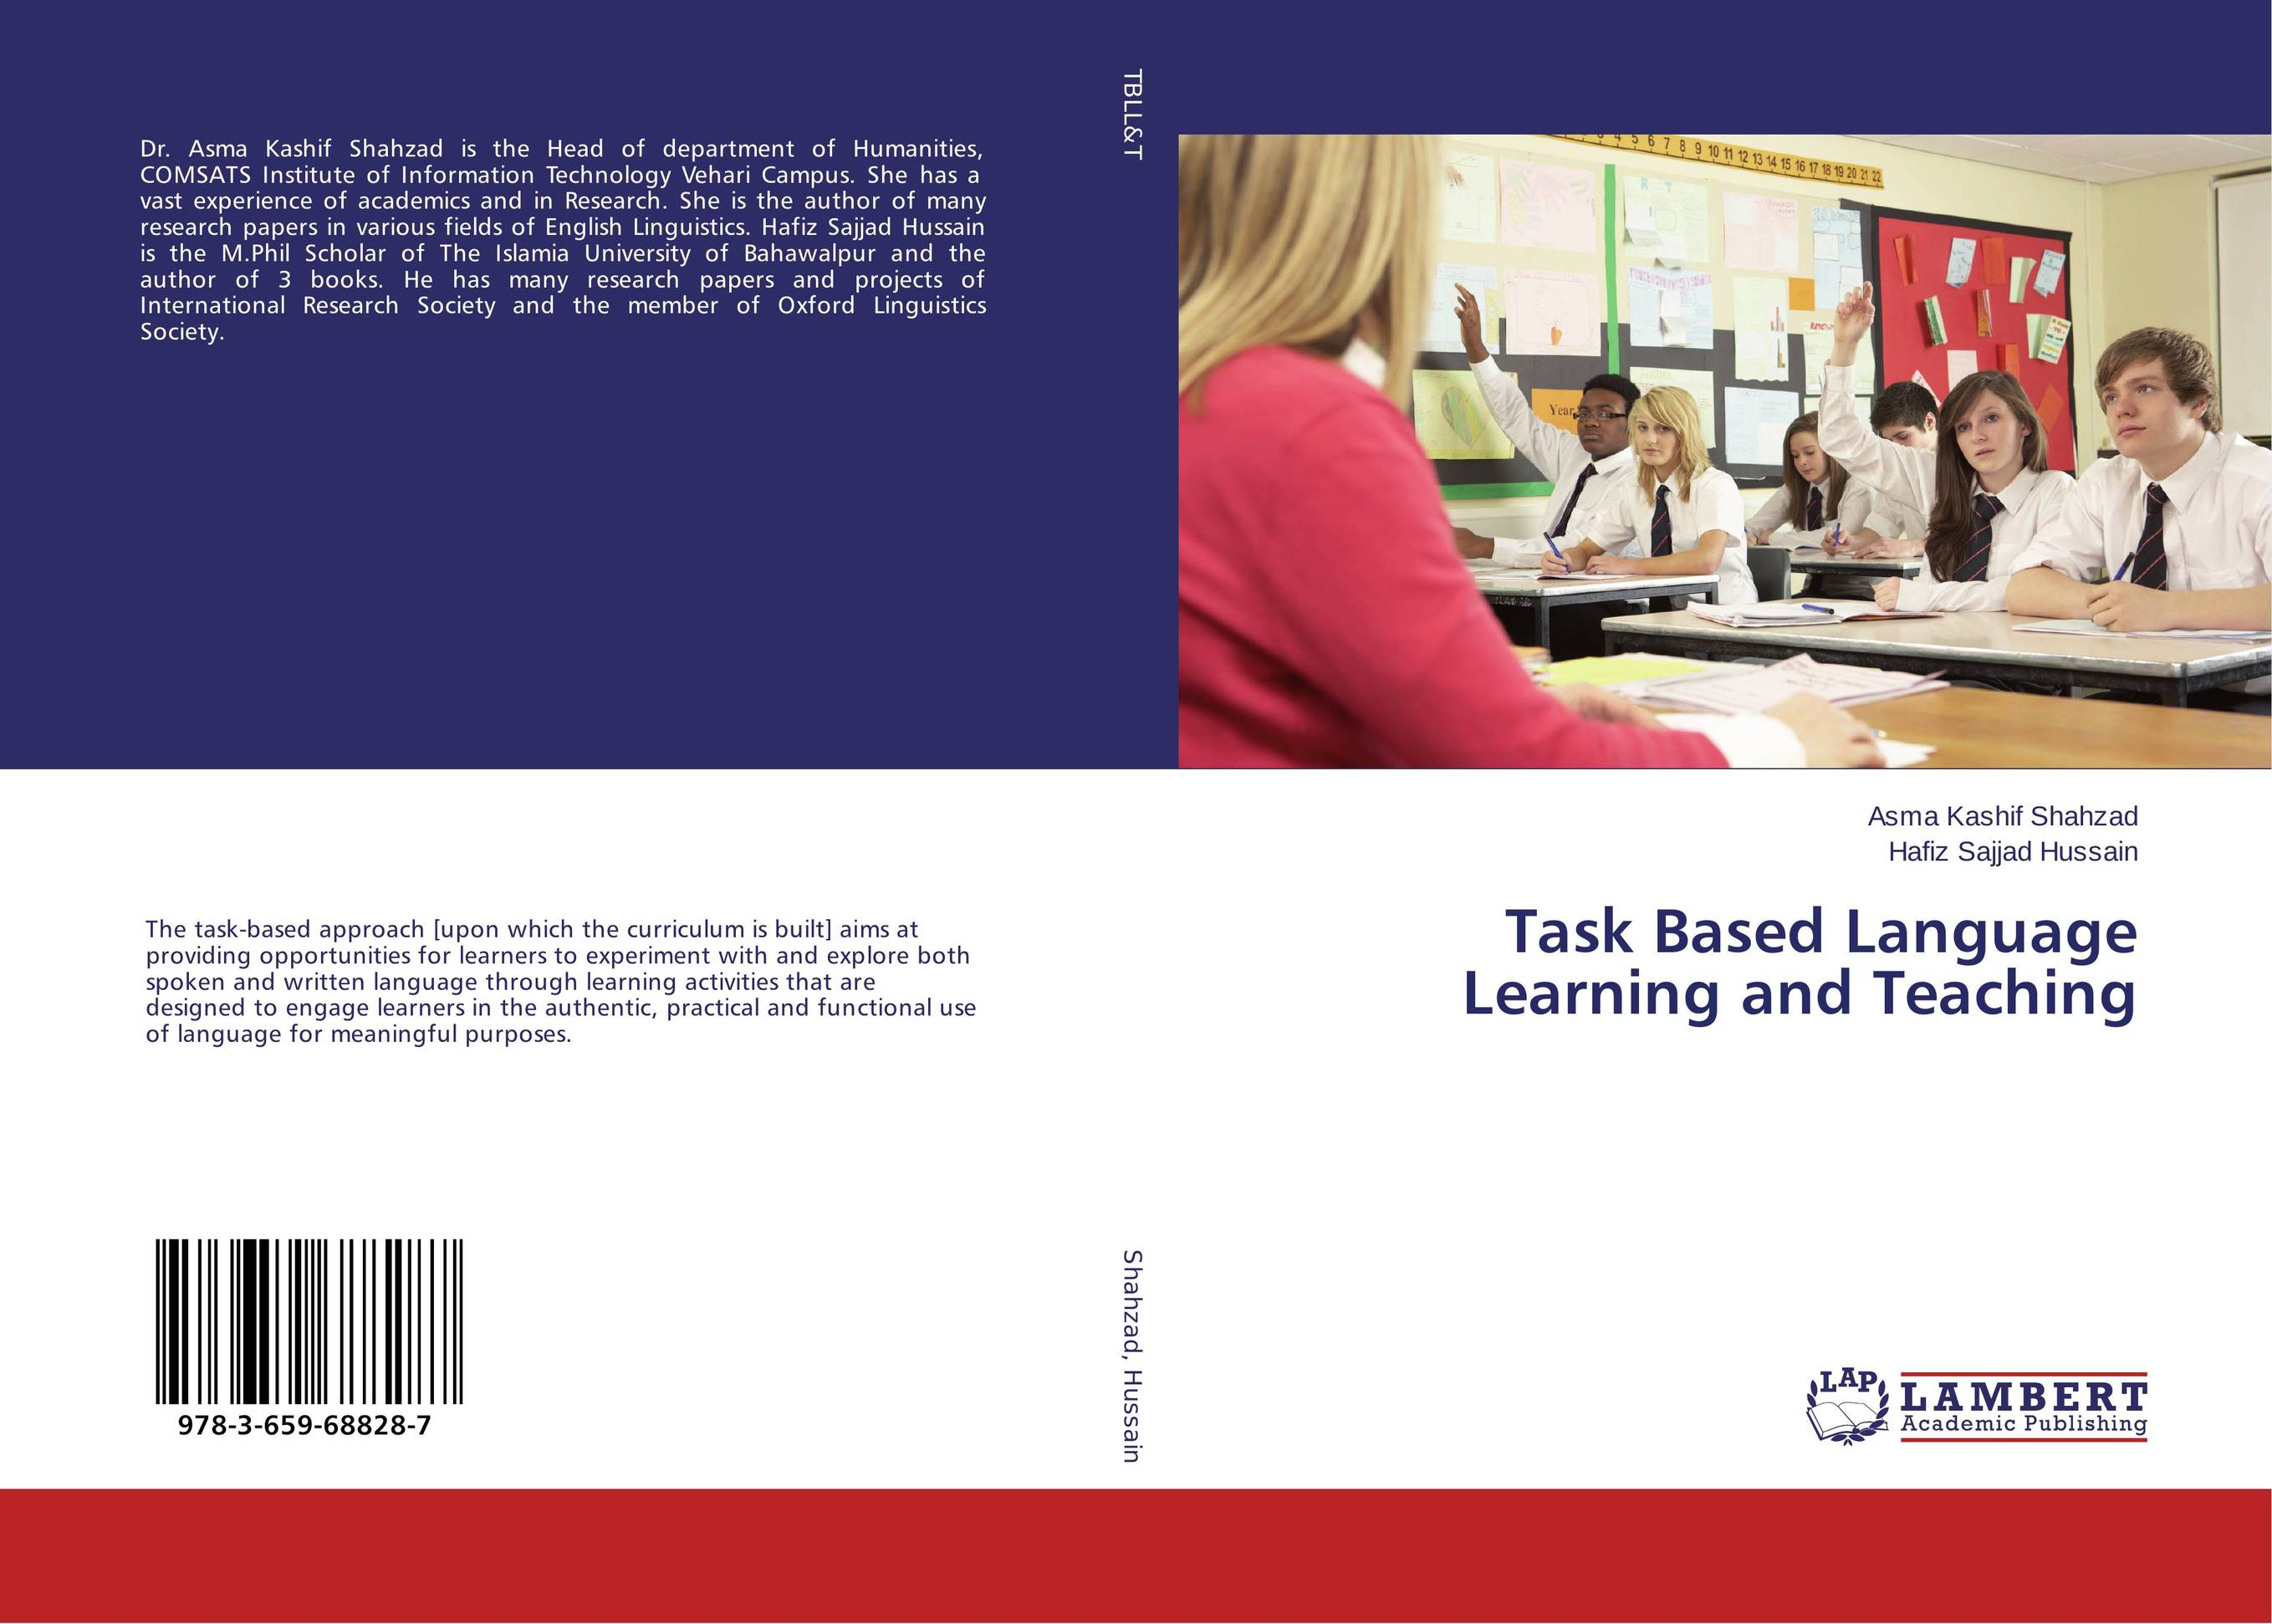 Task Based Language Learning and Teaching